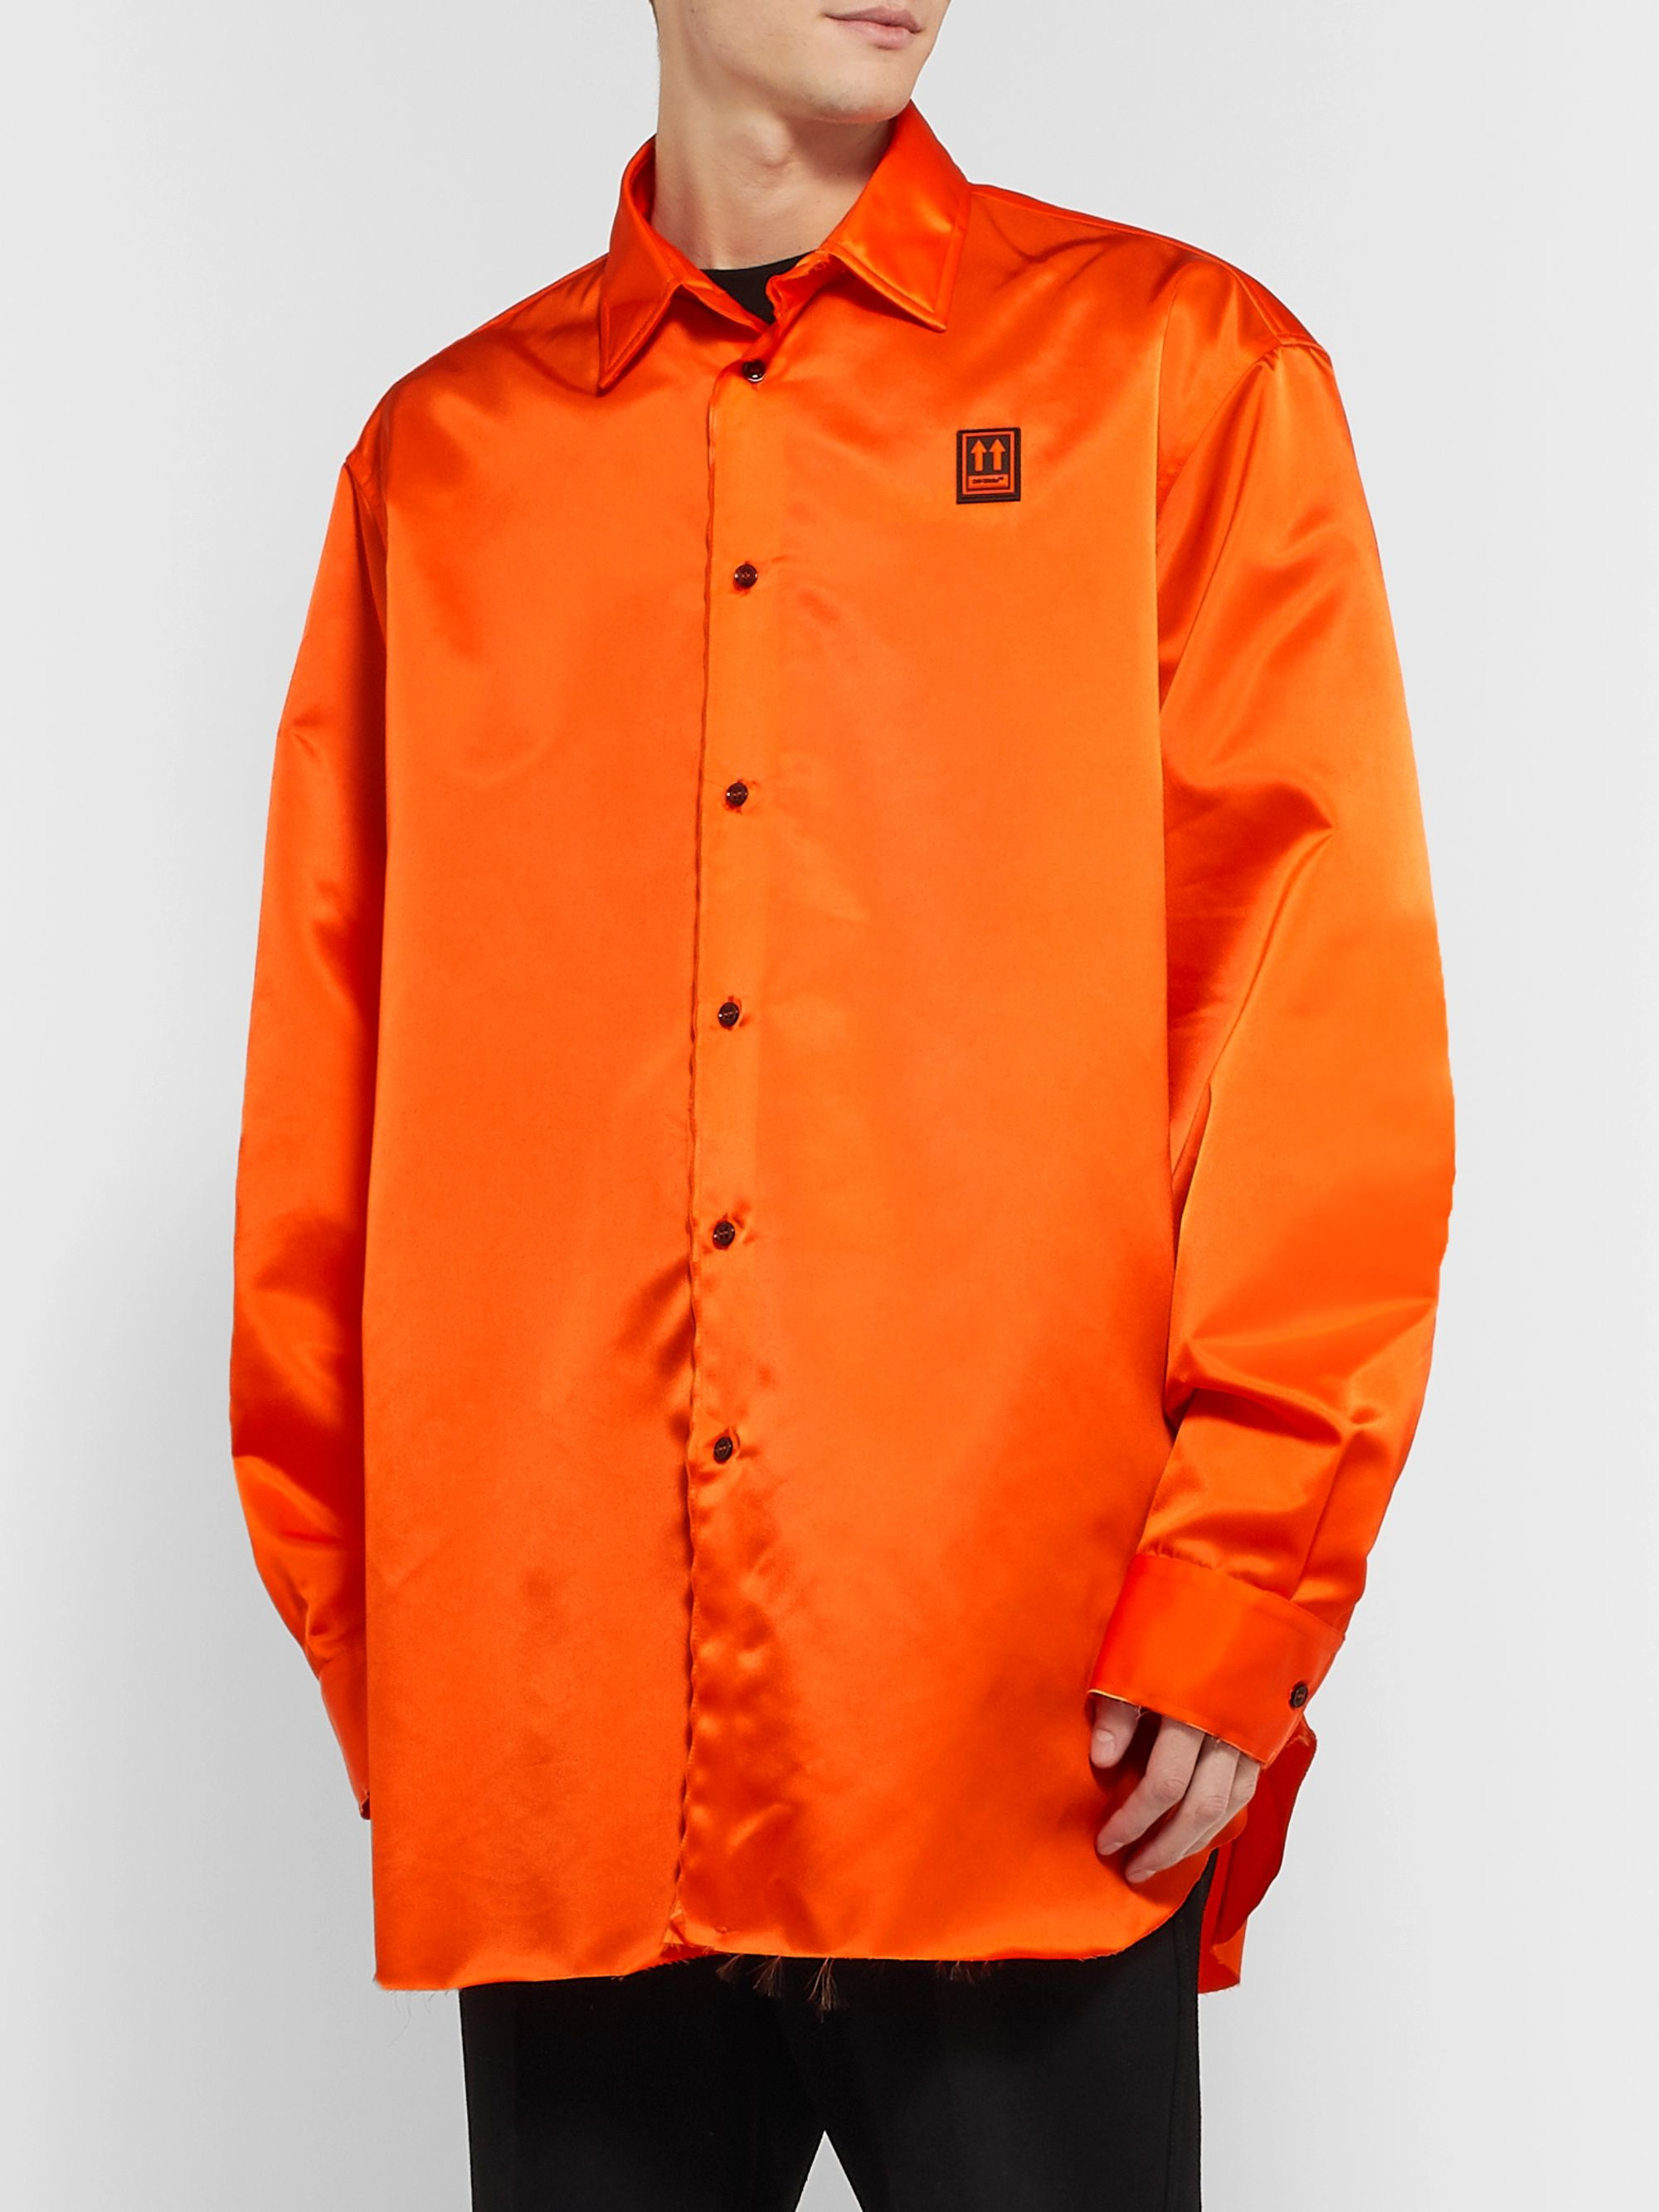 Off-White Oversized Logo-Appliquéd Nylon Shirt